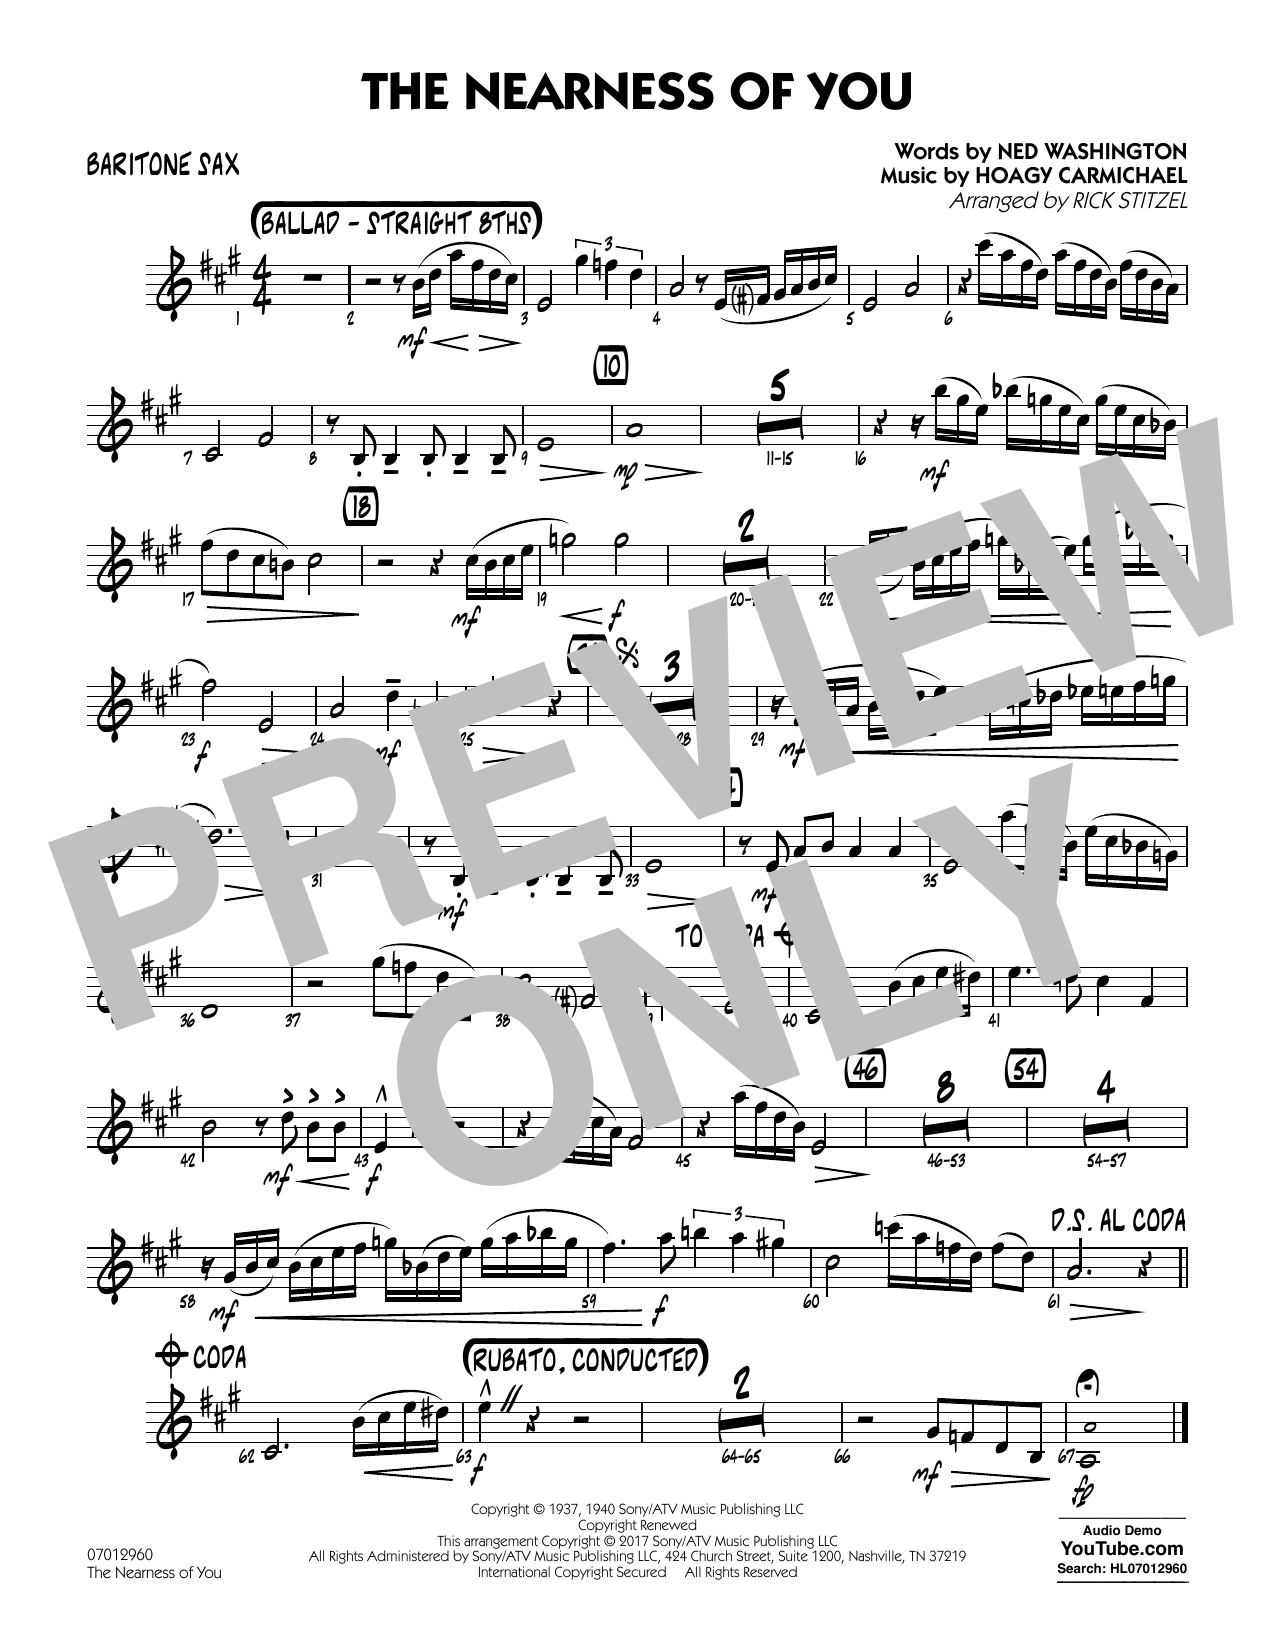 Rick Stitzel The Nearness of You (Key: C) - Baritone Sax sheet music notes and chords. Download Printable PDF.